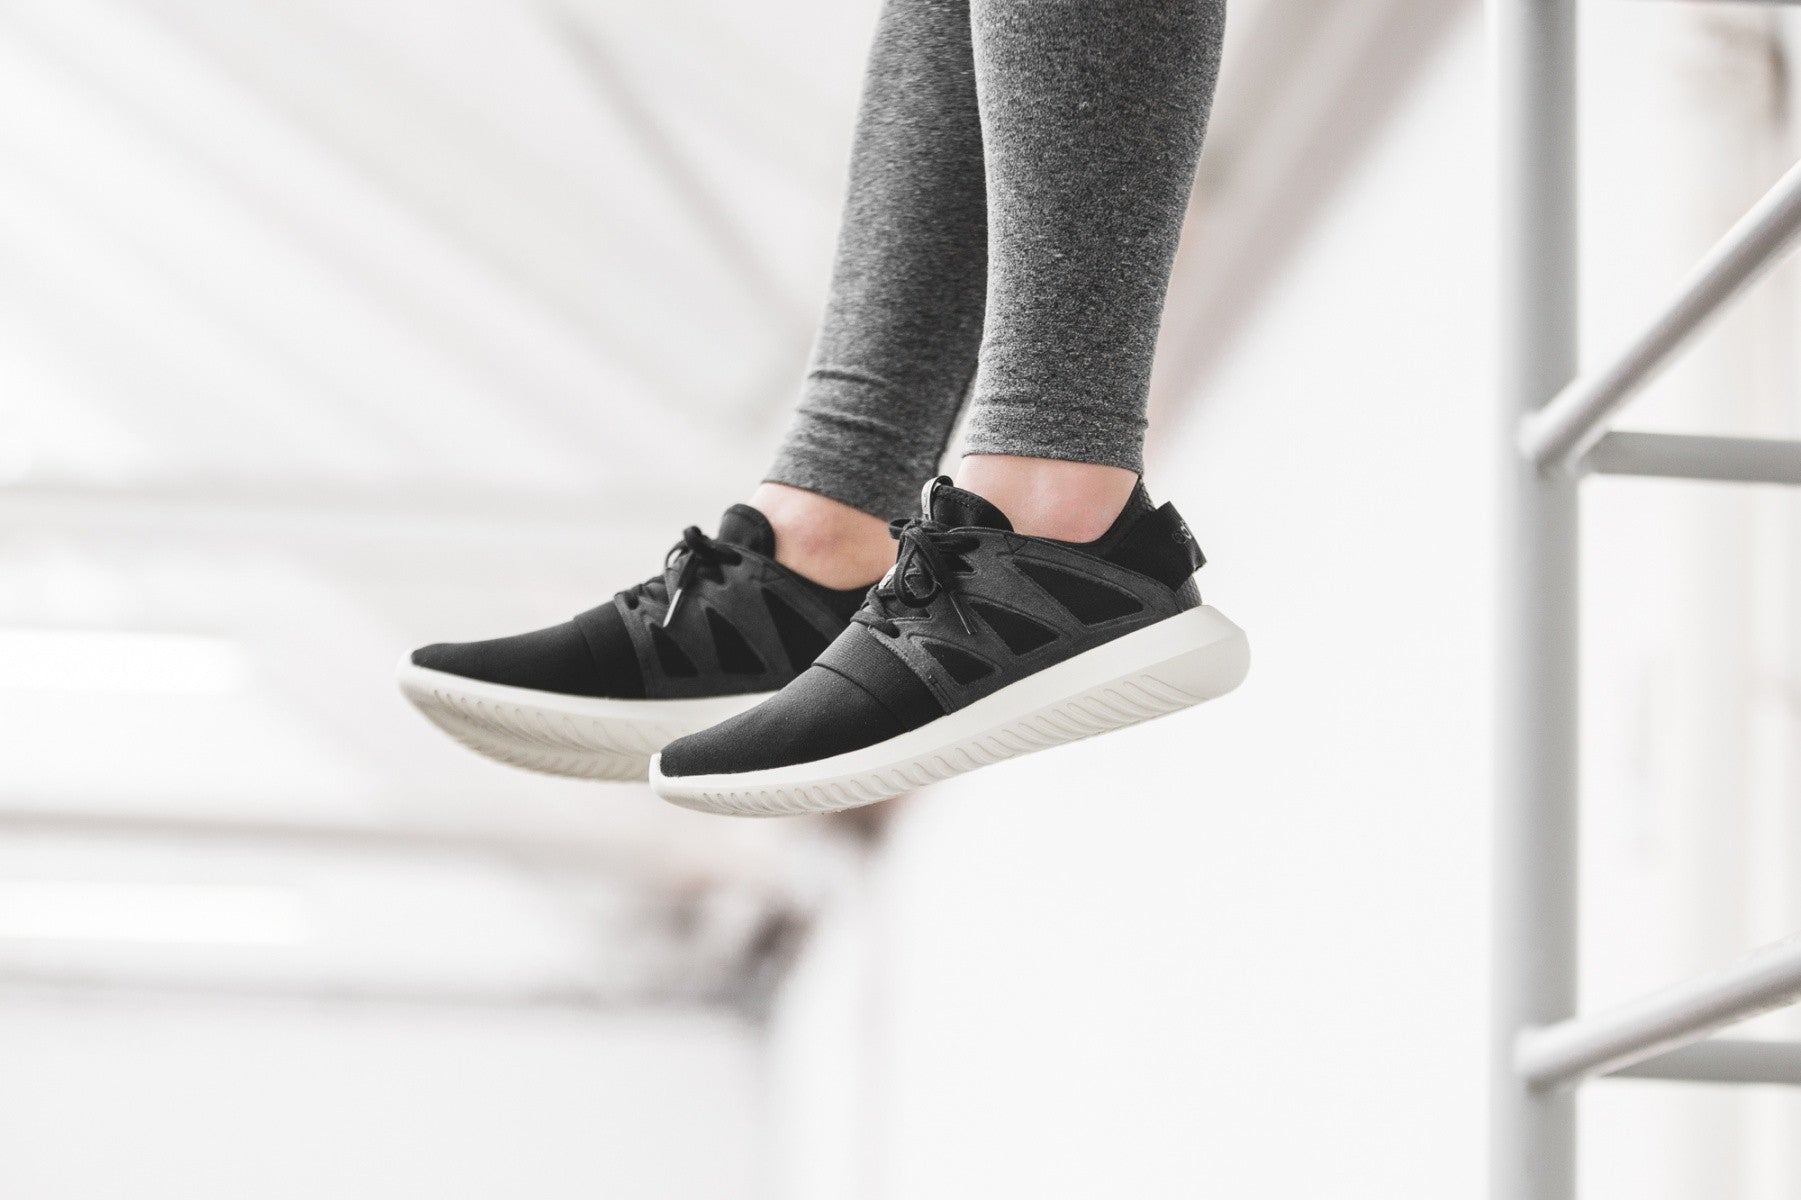 Adidas Originals Tubular Runner Boys 'Toddler Kids